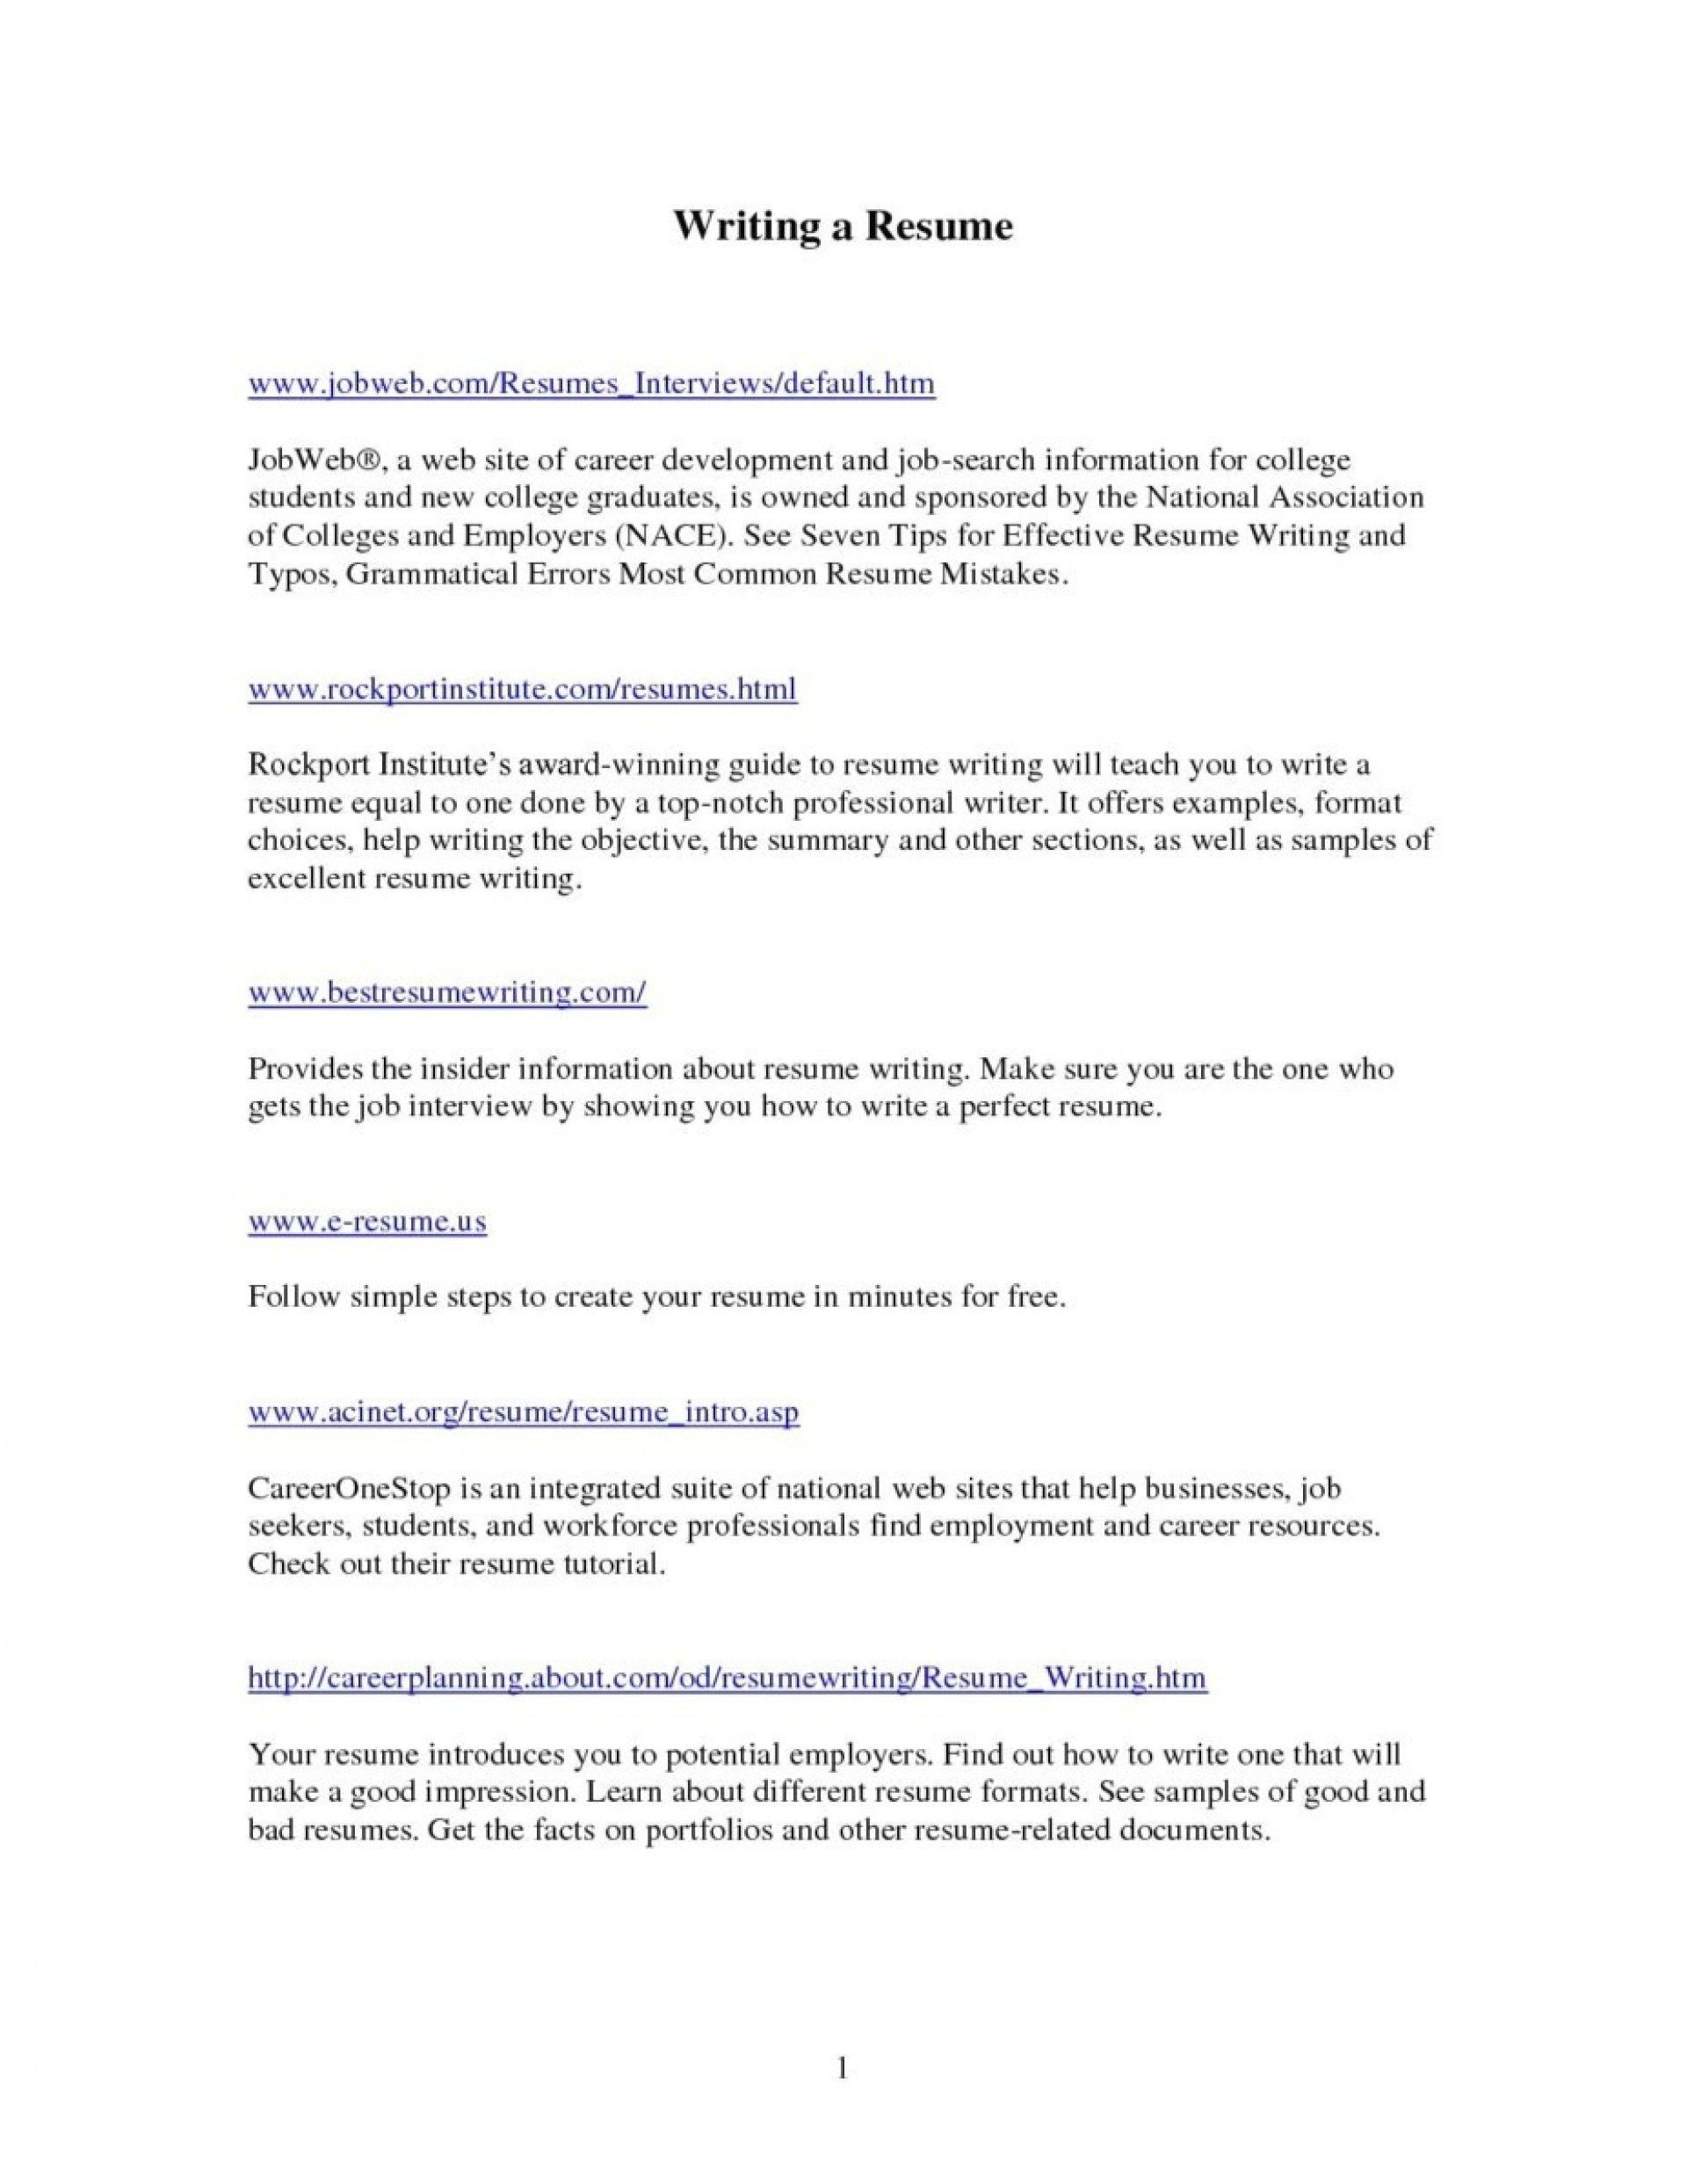 021 Resume Writing Service Reviews Format Best Writers Inspirational Help Professional Of Free Services How To Write Good Apa Research Unique A Paper Psychology Outline Do You 1920